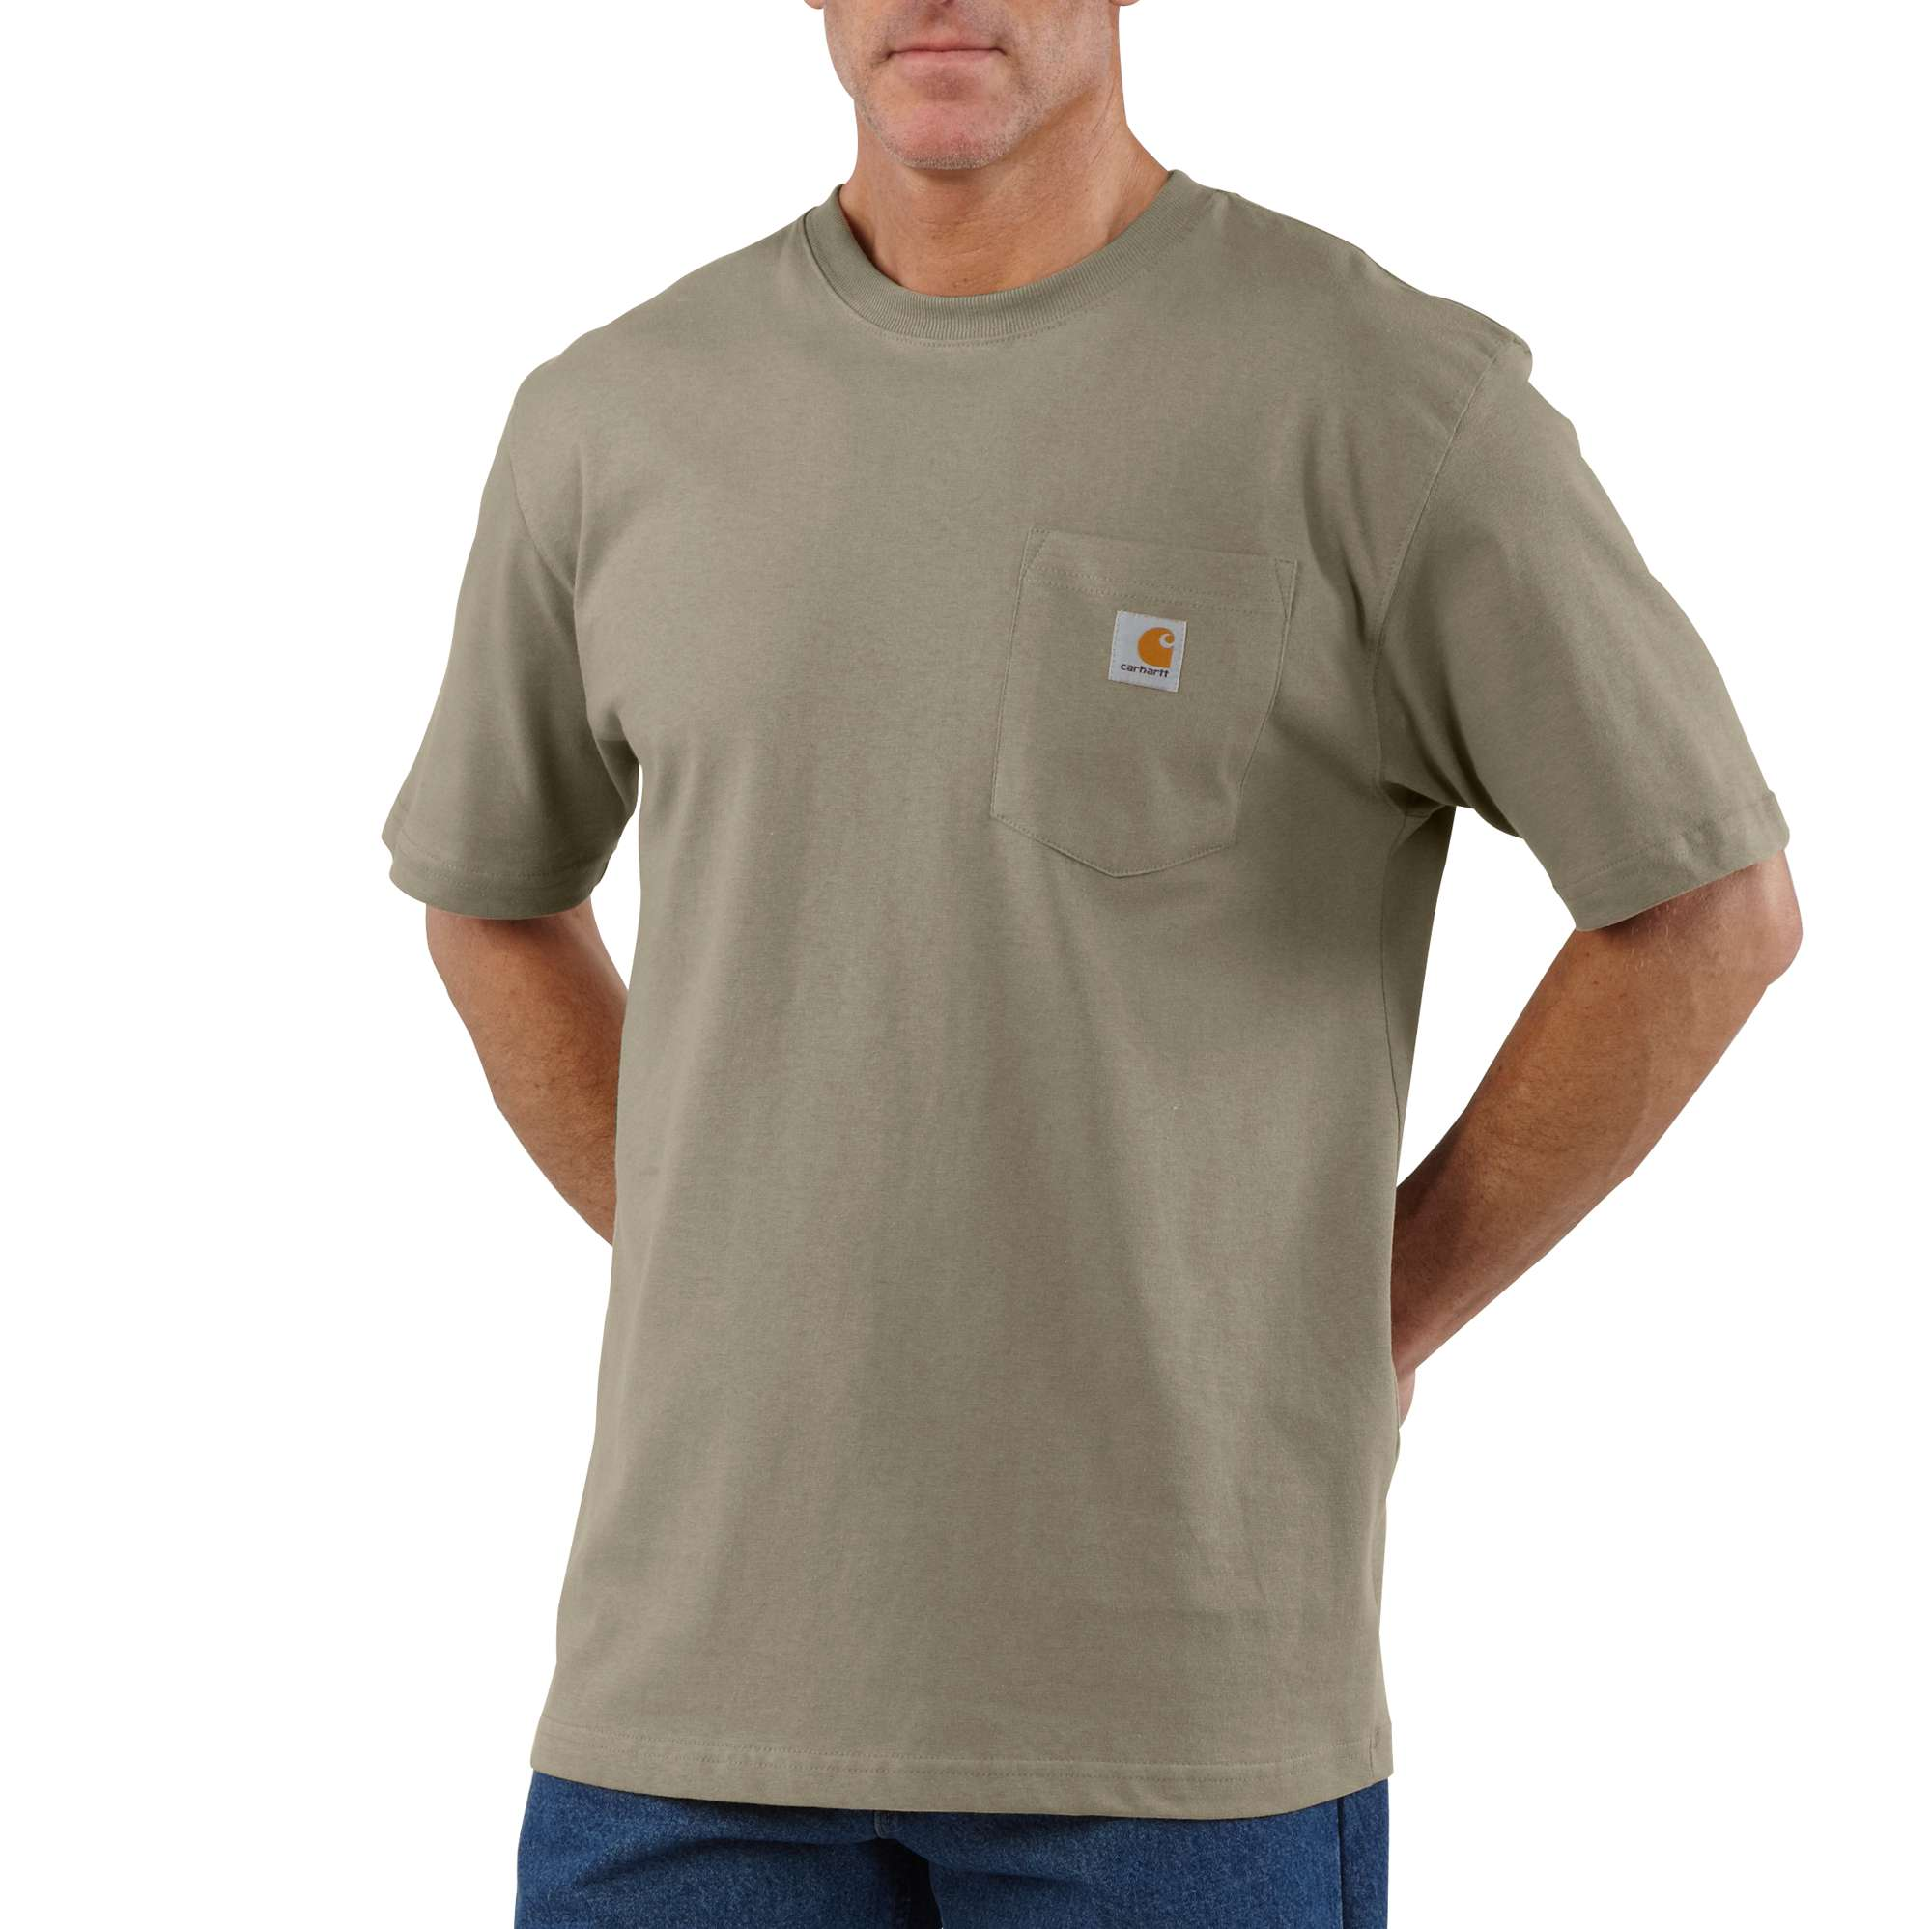 Men's Workwear Pocket T-shirt, Lt Brown,Taupe, swatch